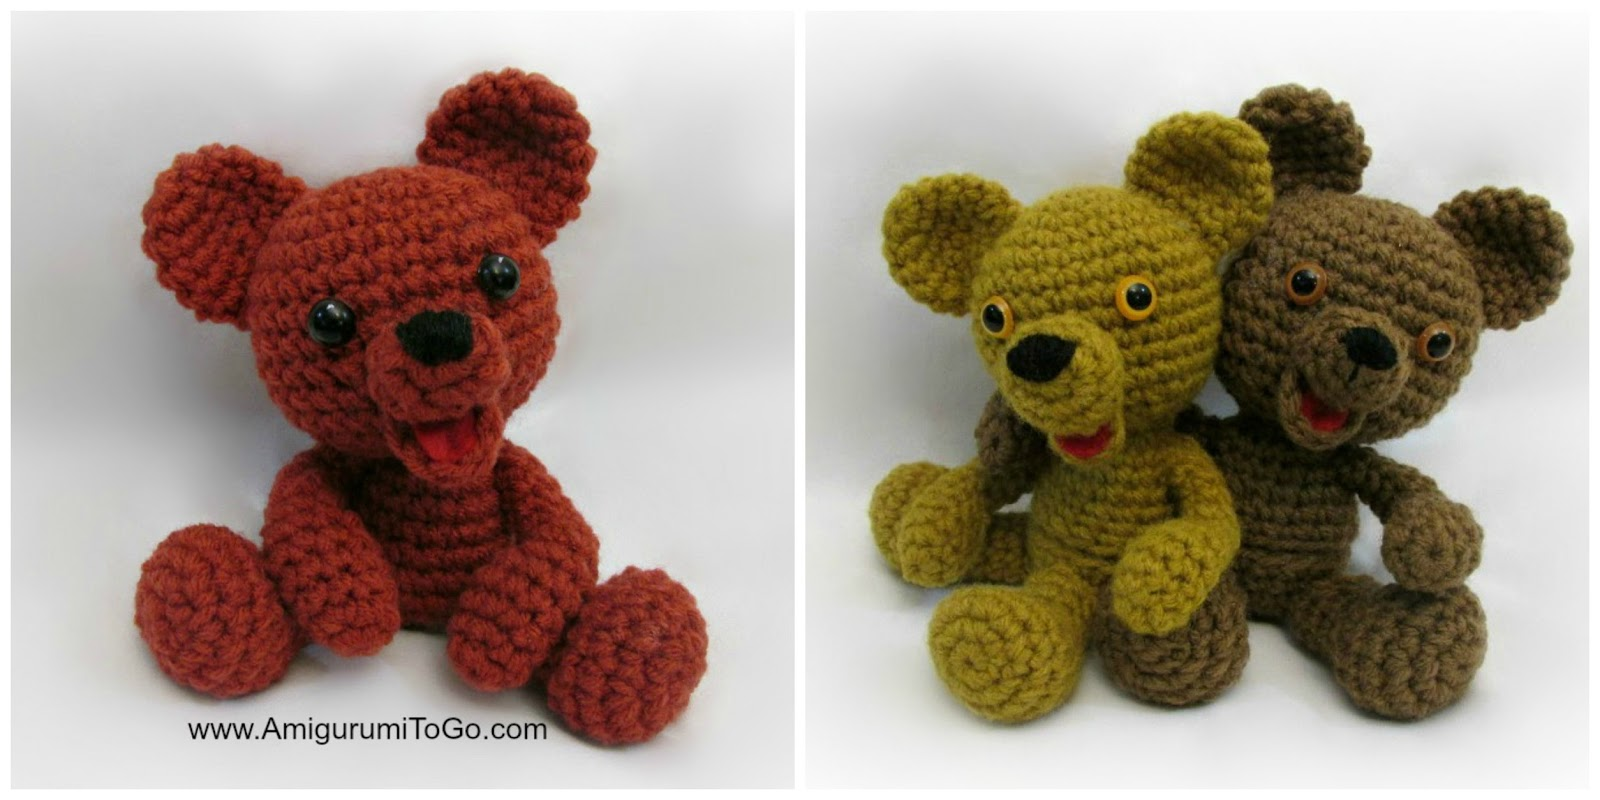 Crochet Amigurumi Bear Ears : Browning the Bear With Egg and Without ~ Amigurumi To Go